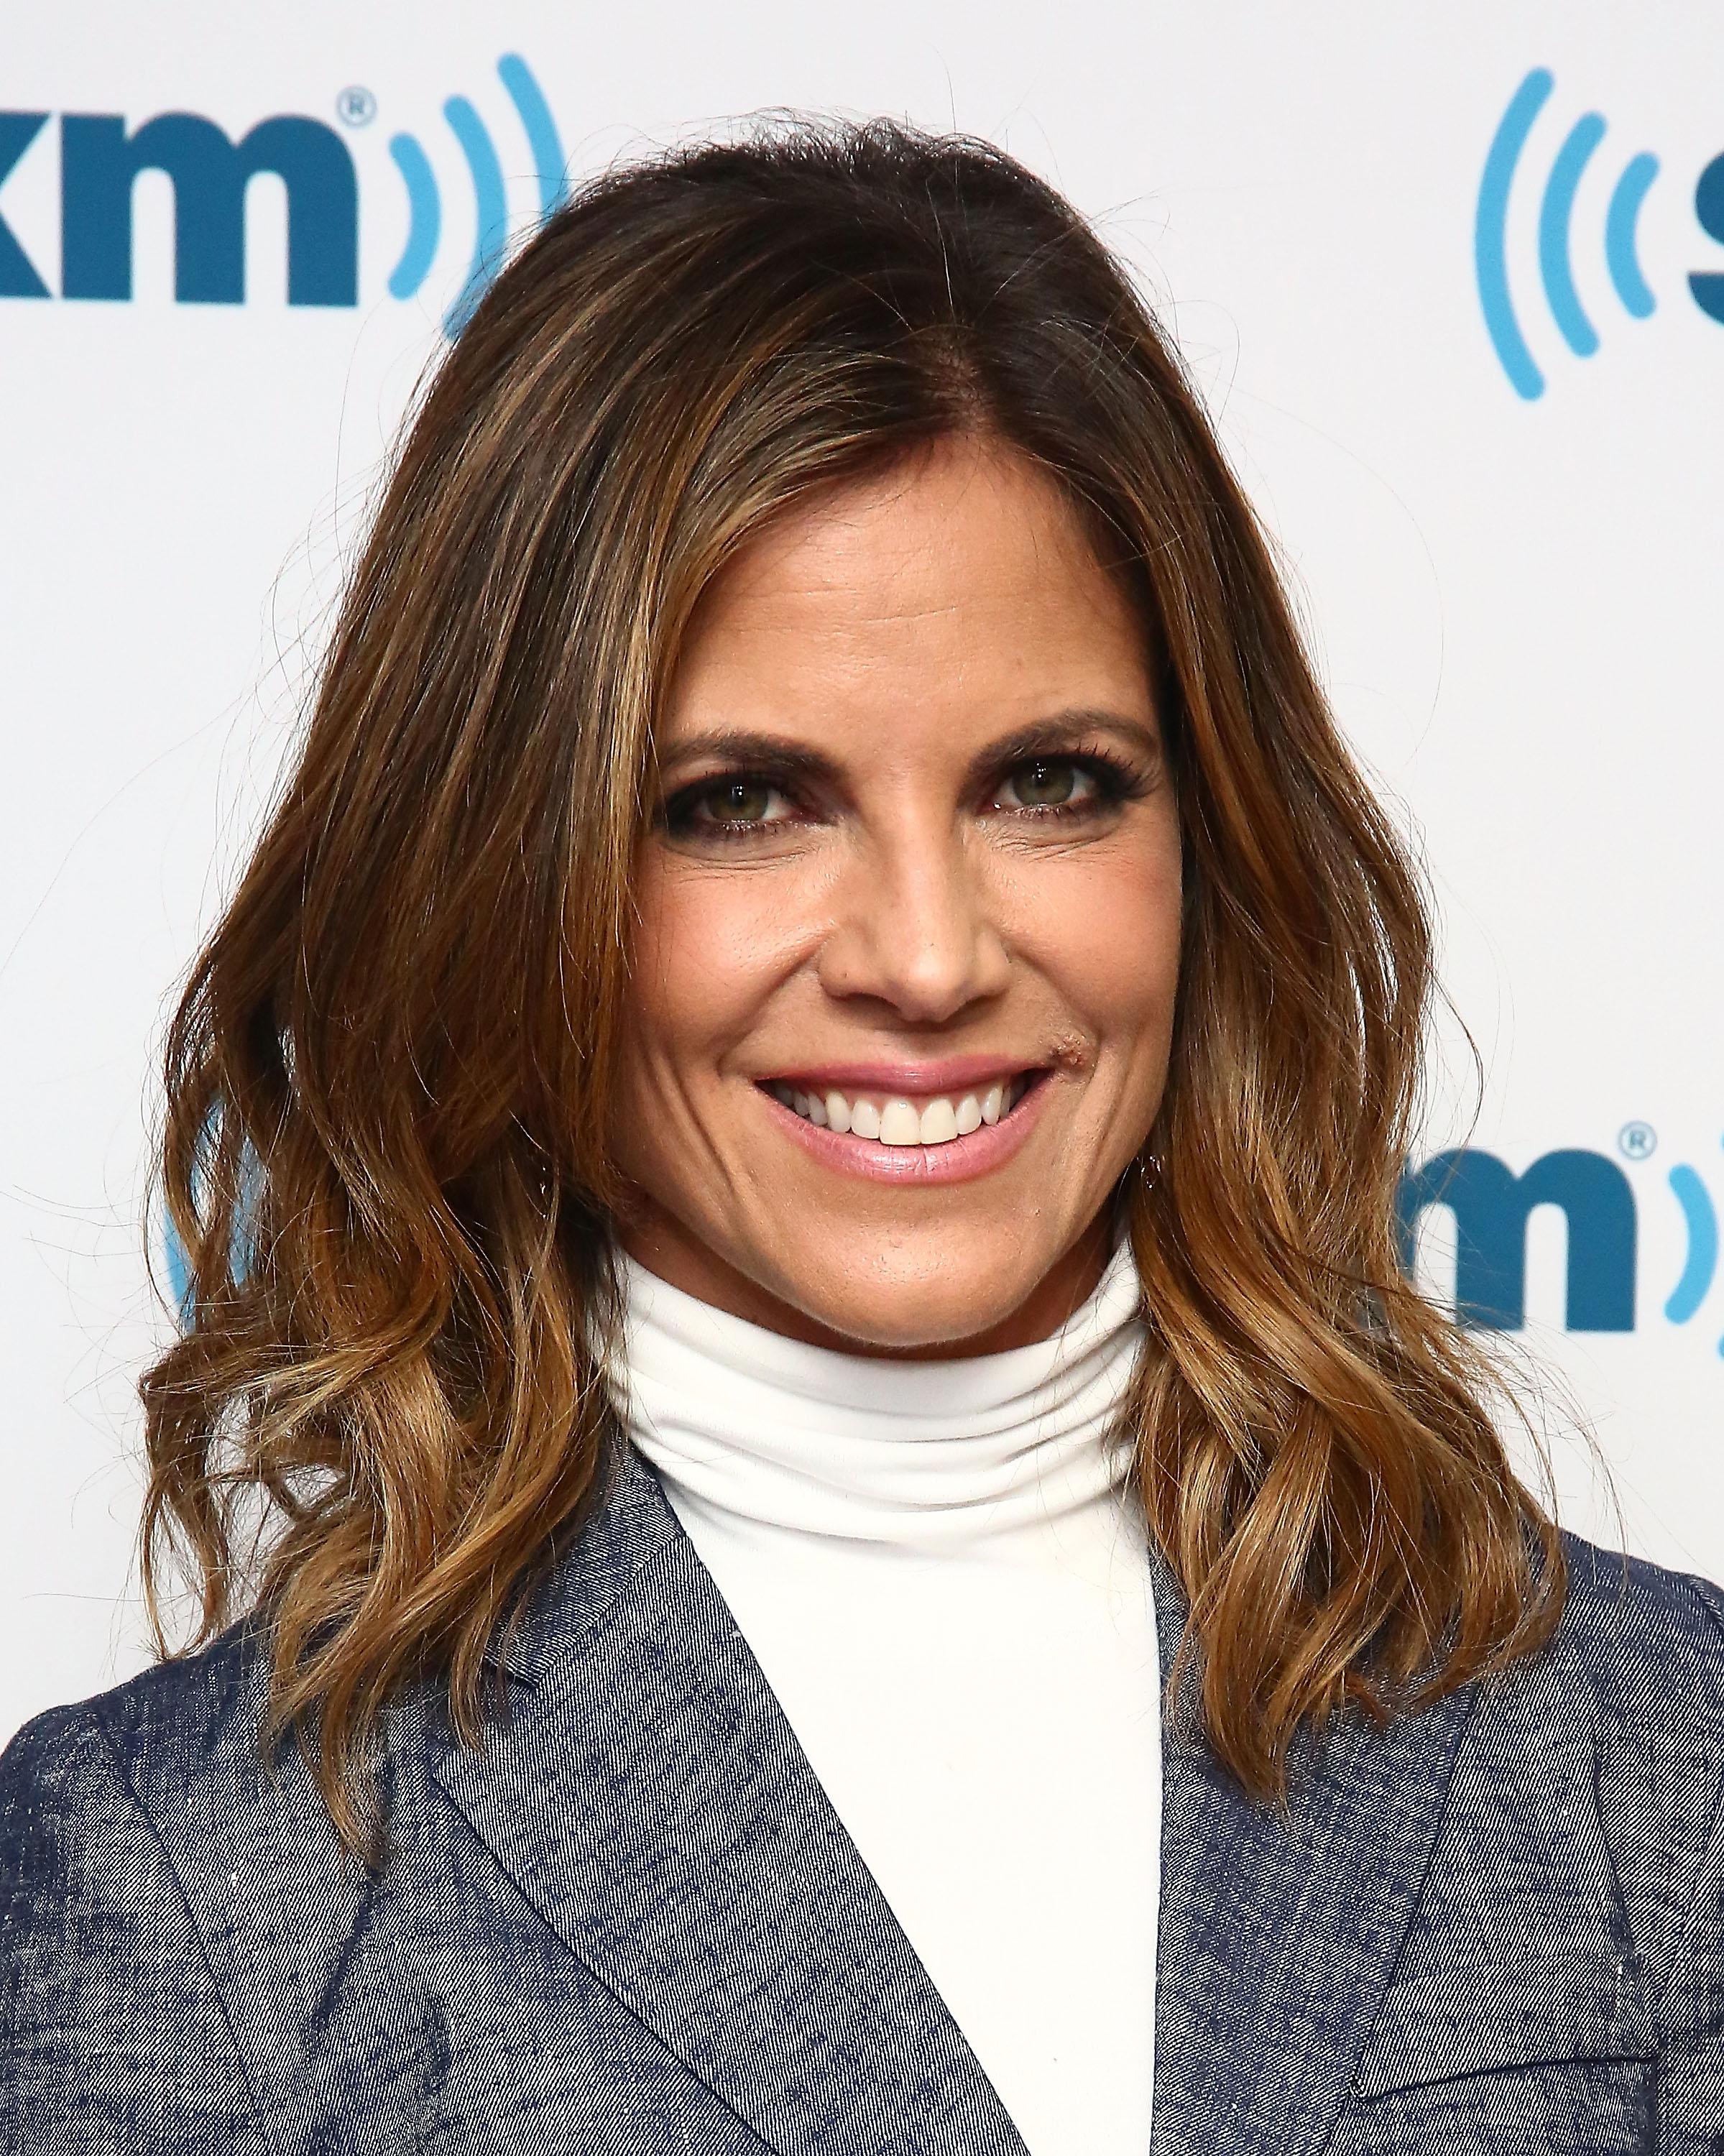 TODAY show news anchor Natalie Morales visits SiriusXM Studios on April 21, 2016 in New York City.